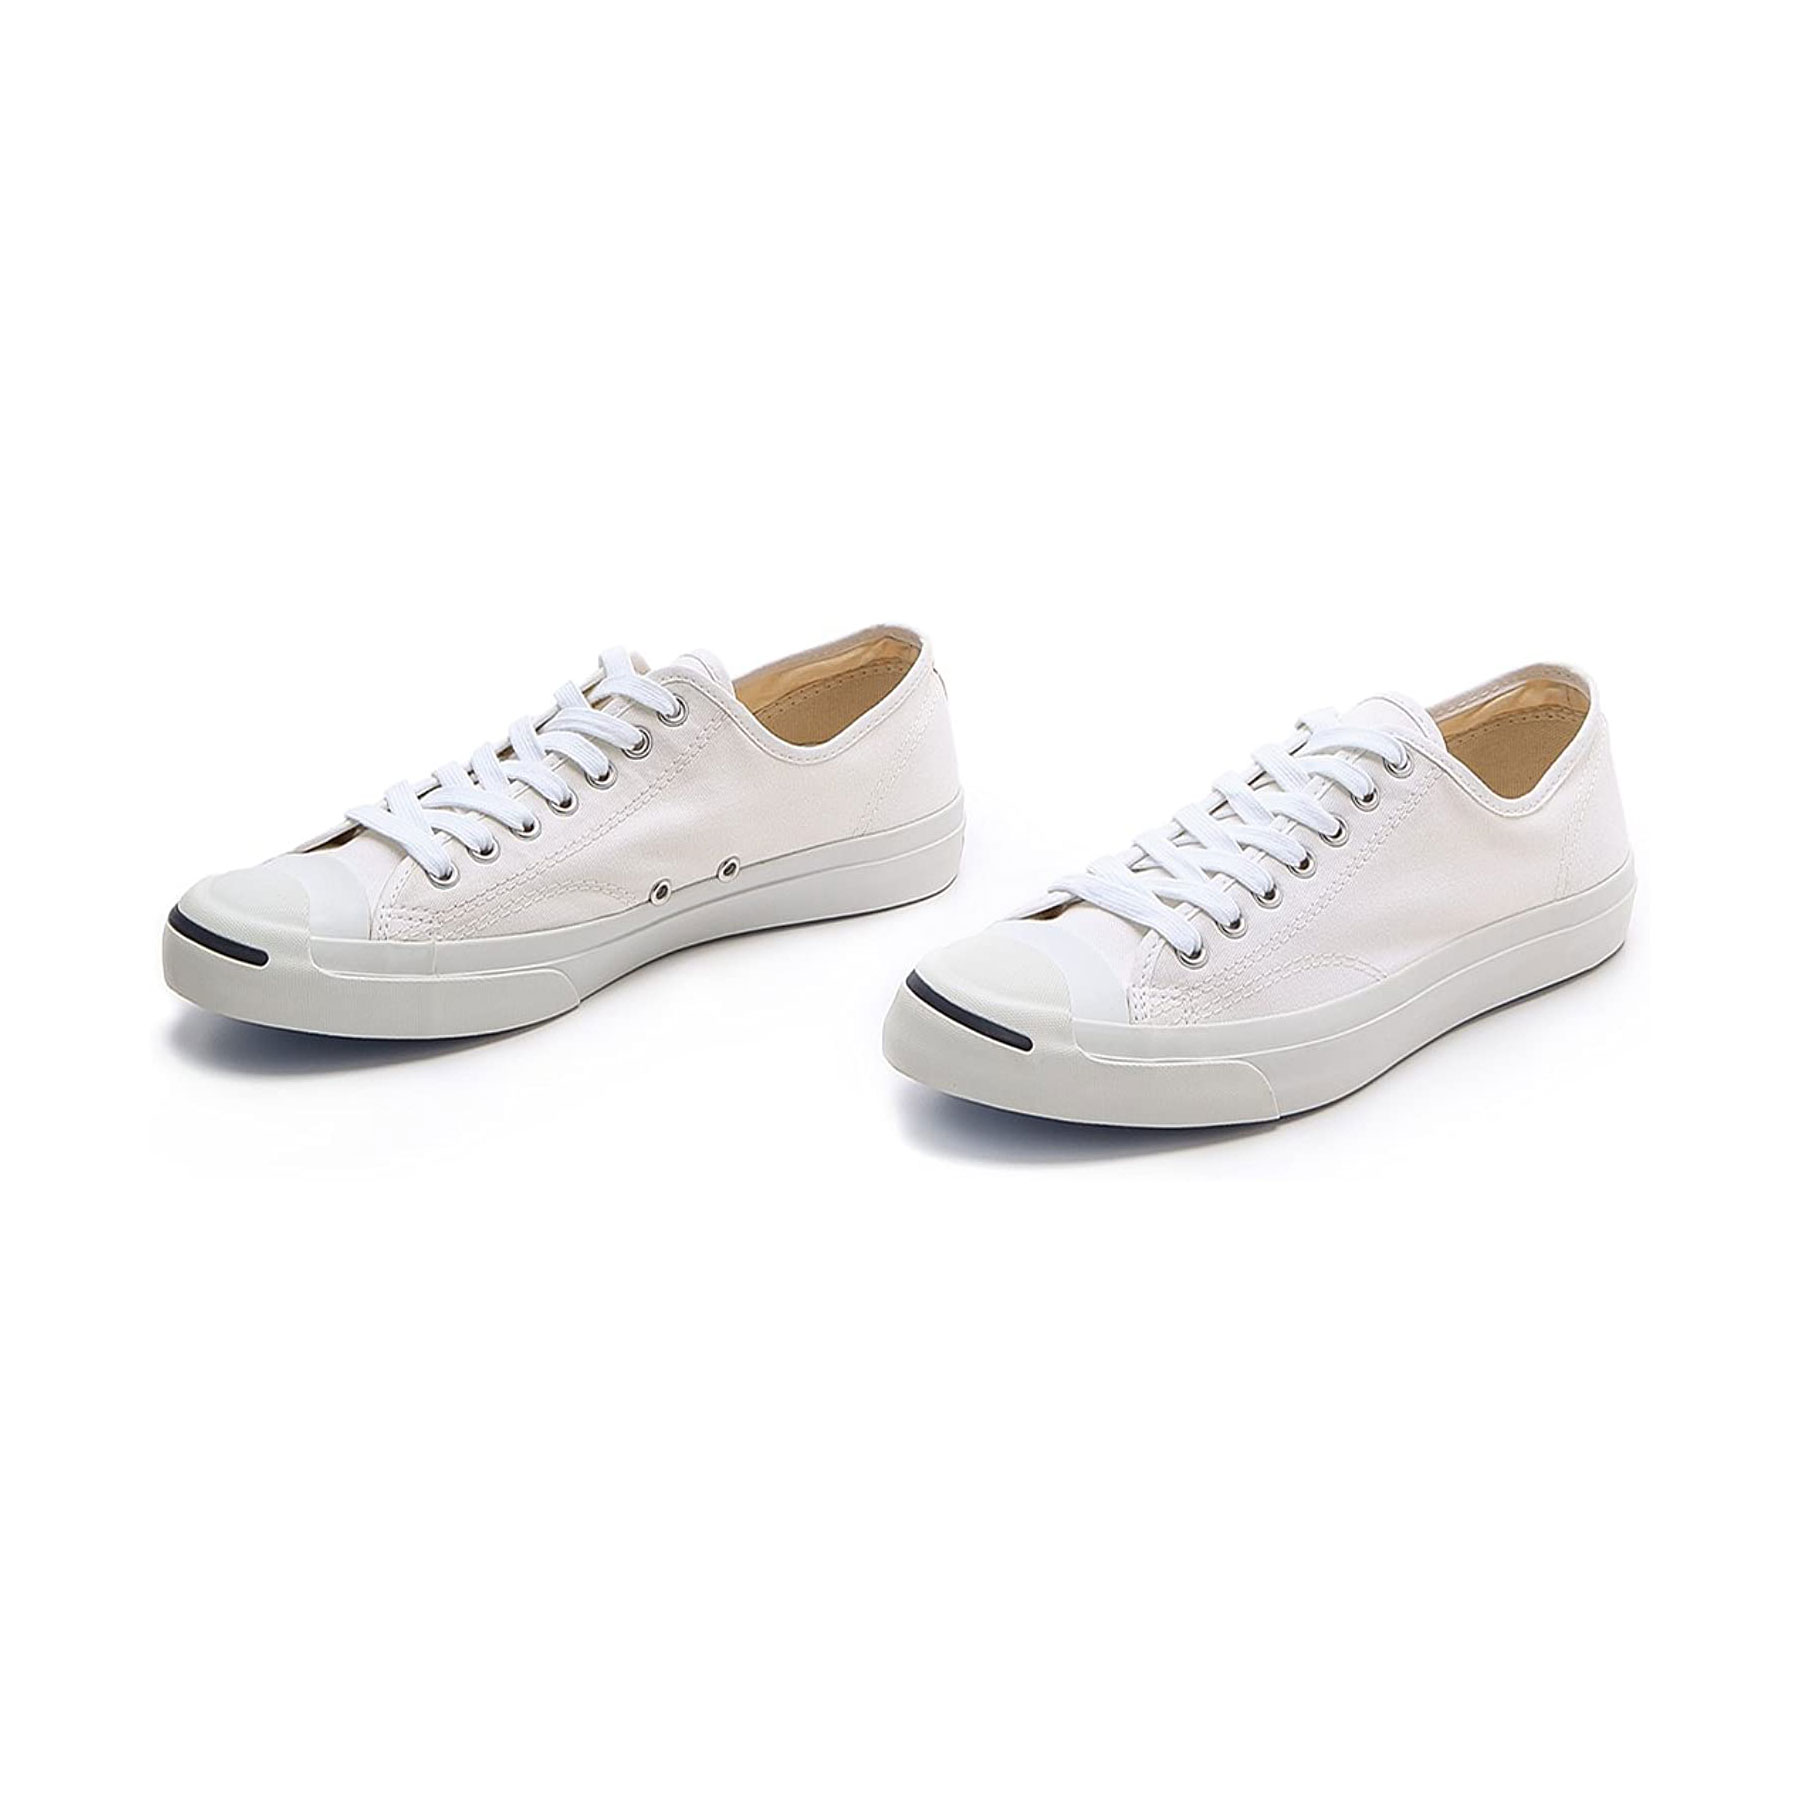 Jack Pursell Low Top Sneakers